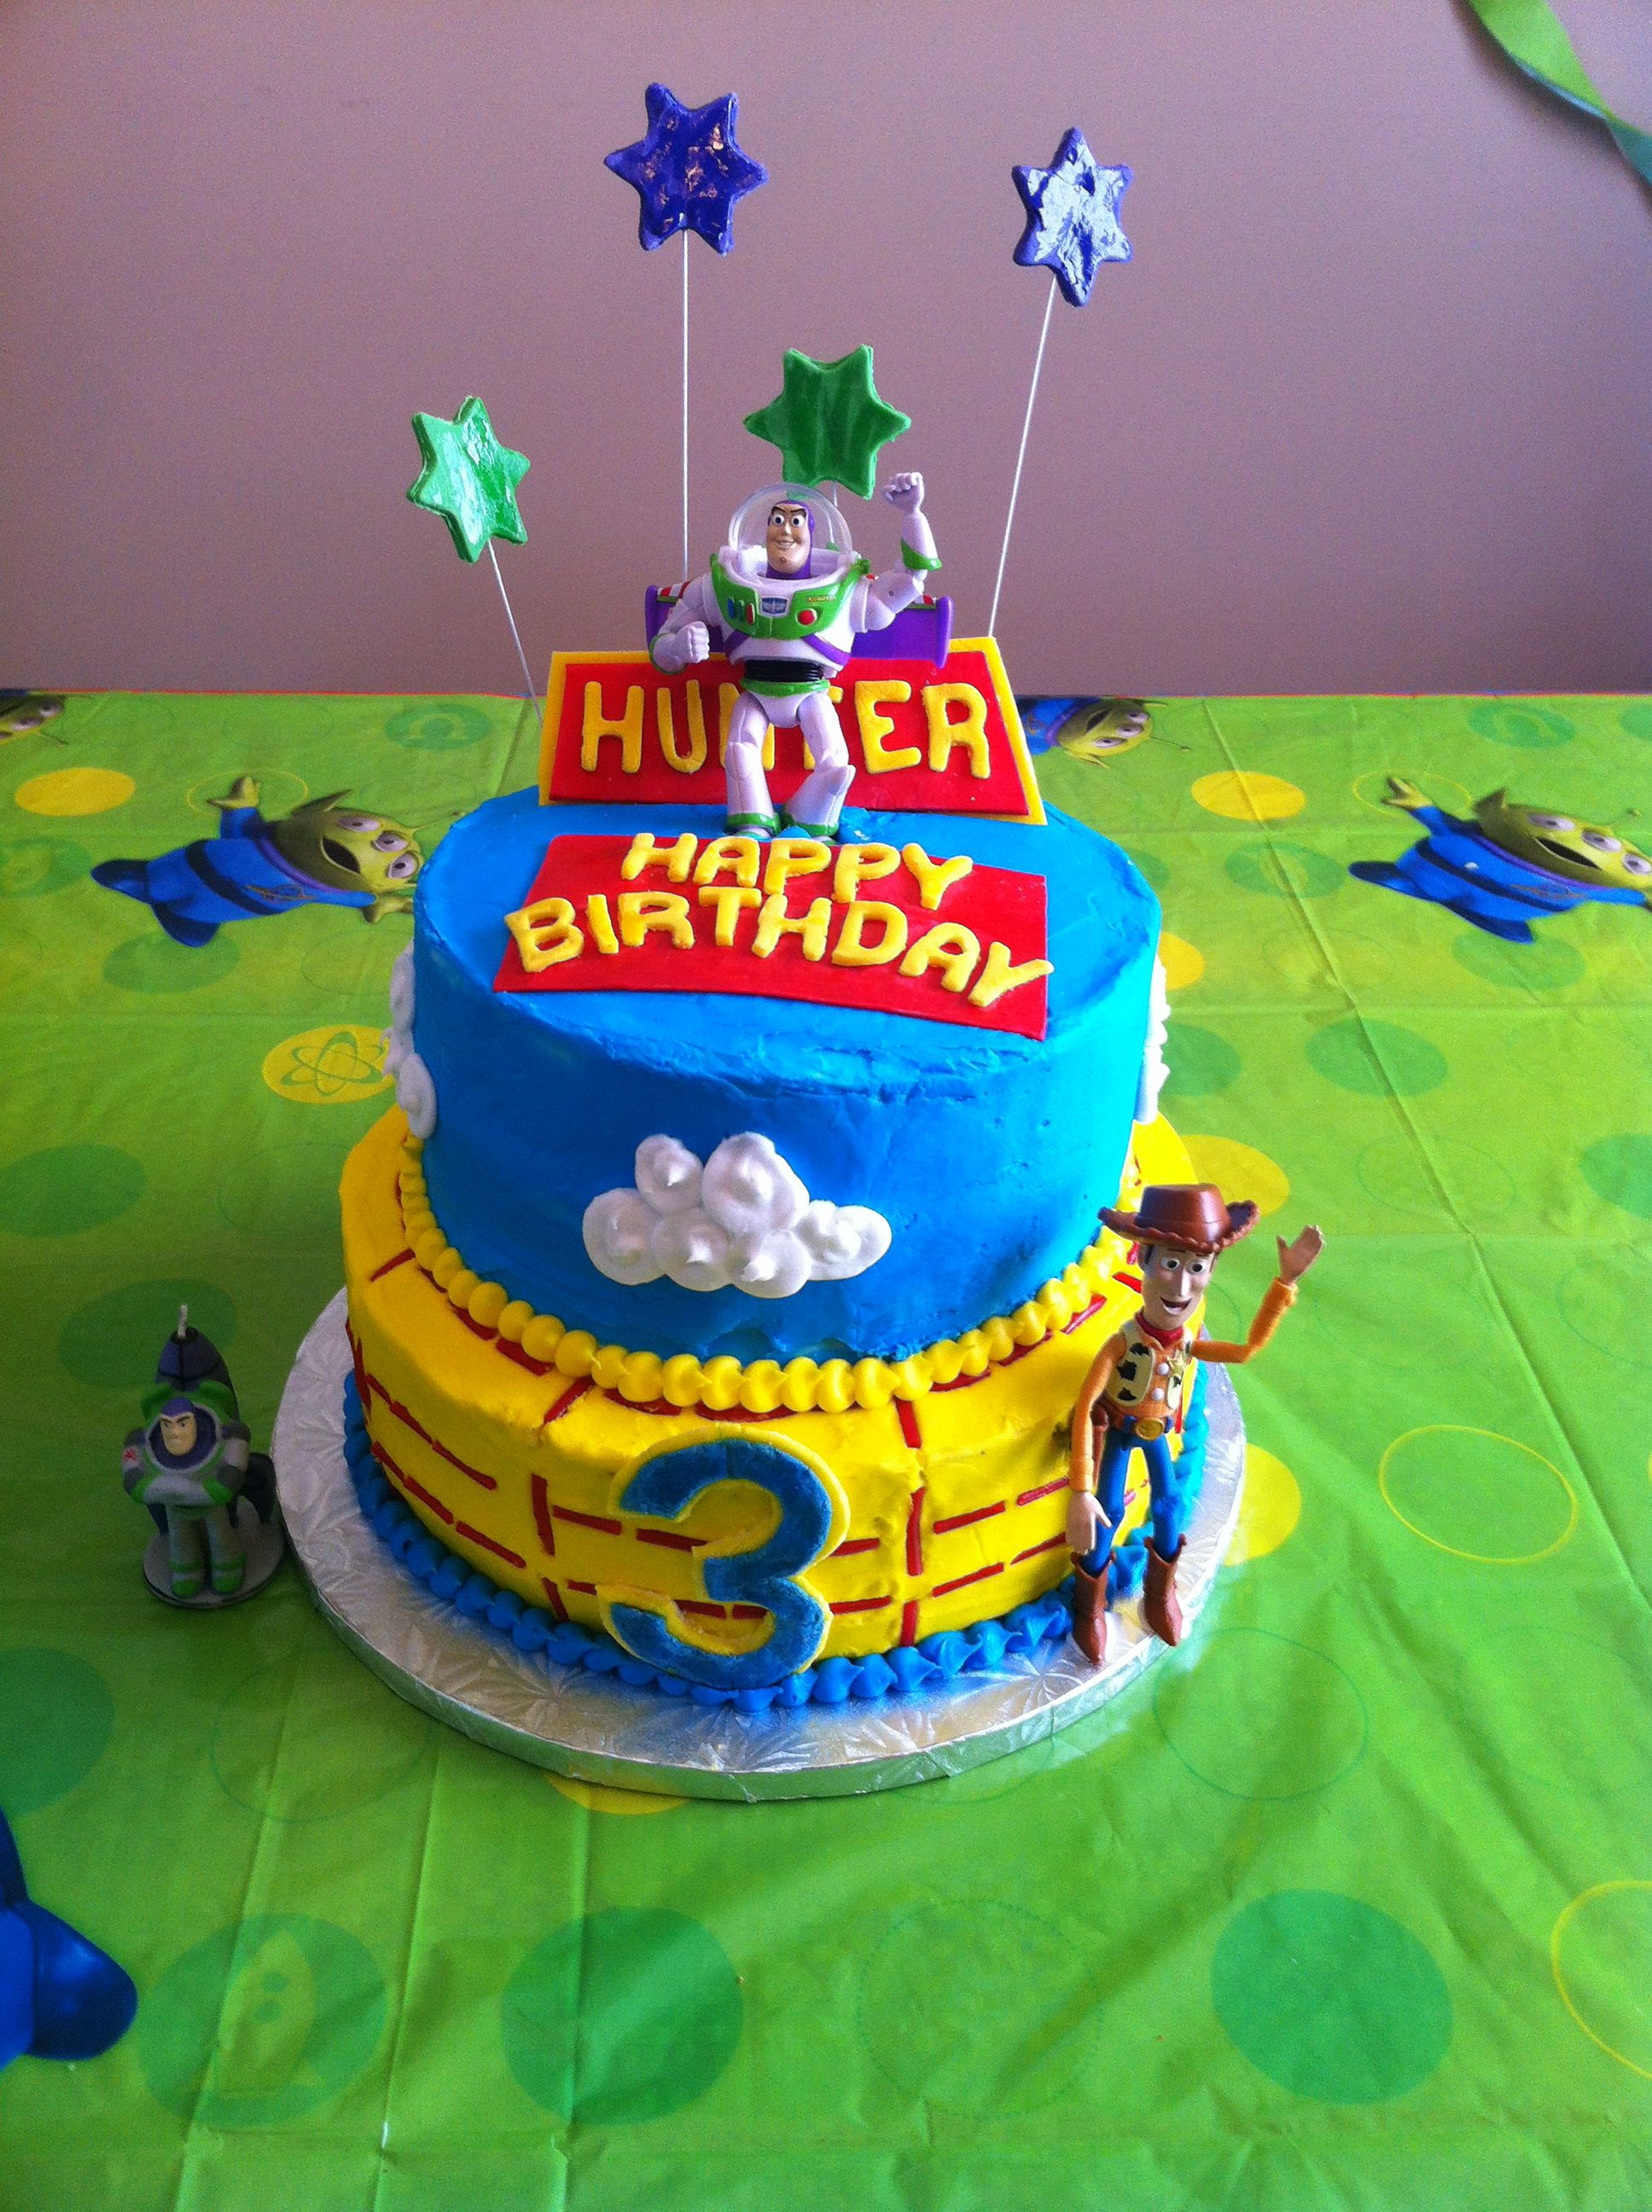 Toy Story Cake Two Tiered Cake Using Buttercream To Decorate